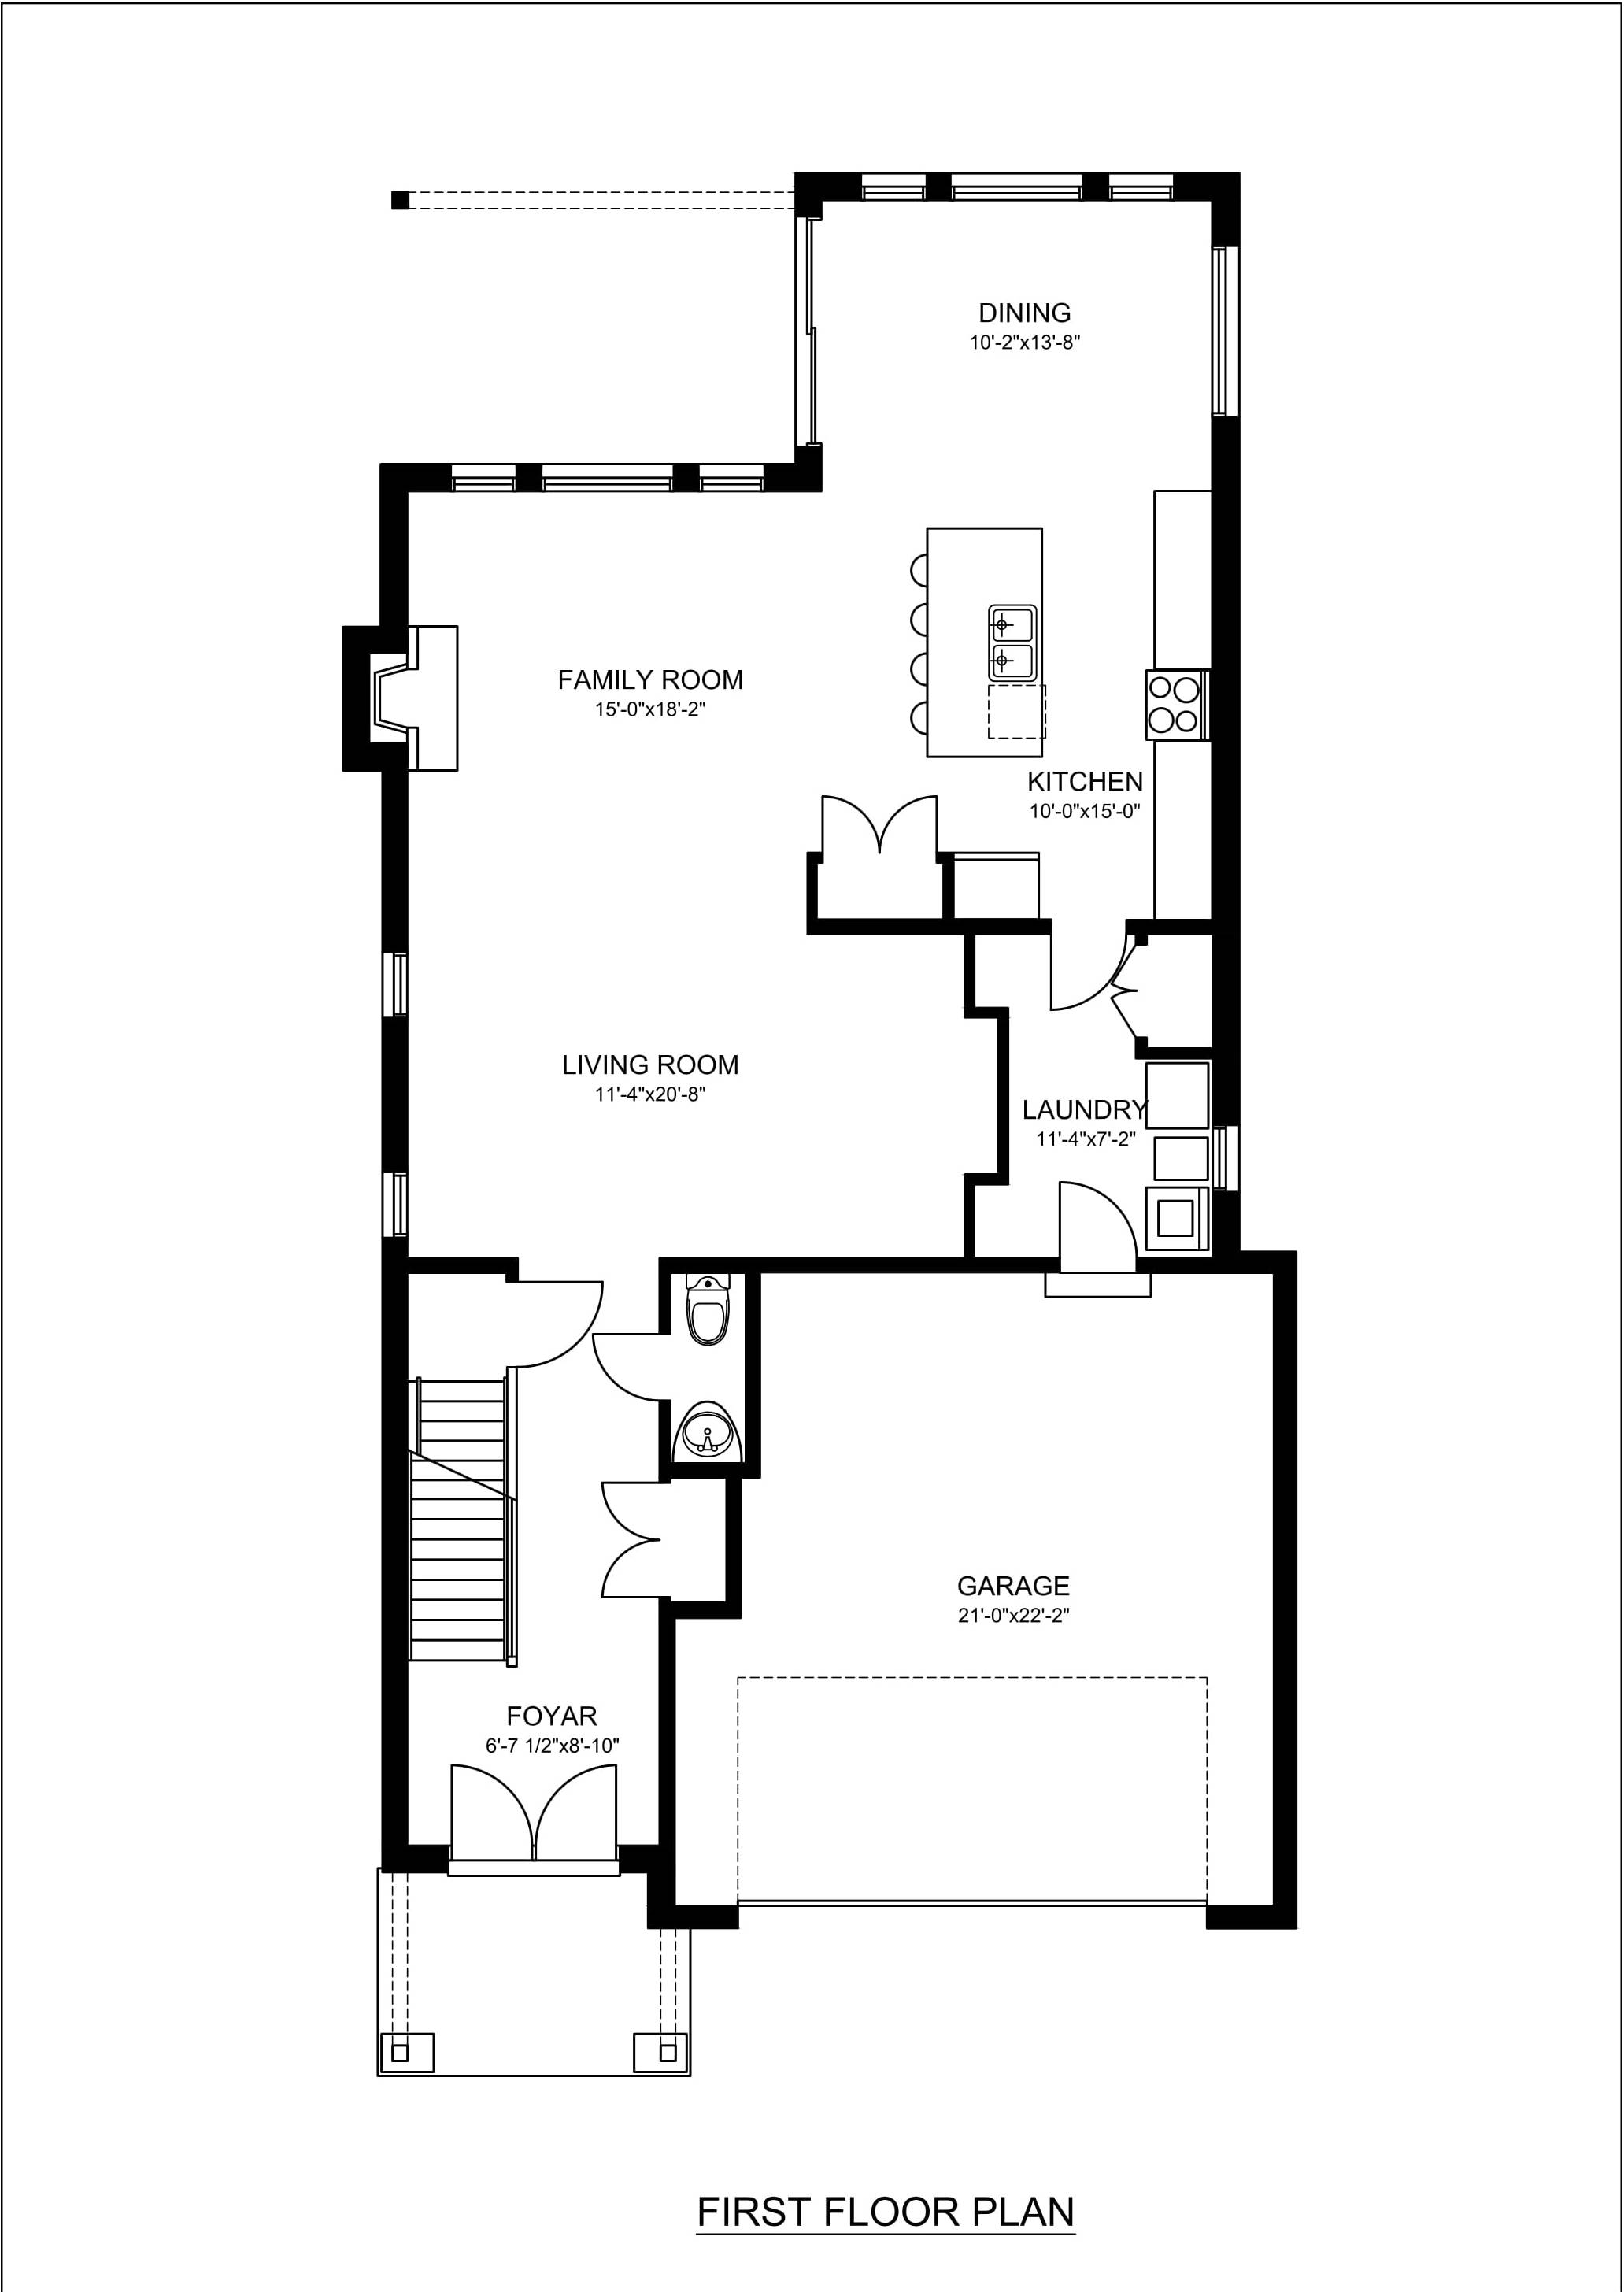 2d floor plan design rendering samples examples for Home floor plans with estimated cost to build